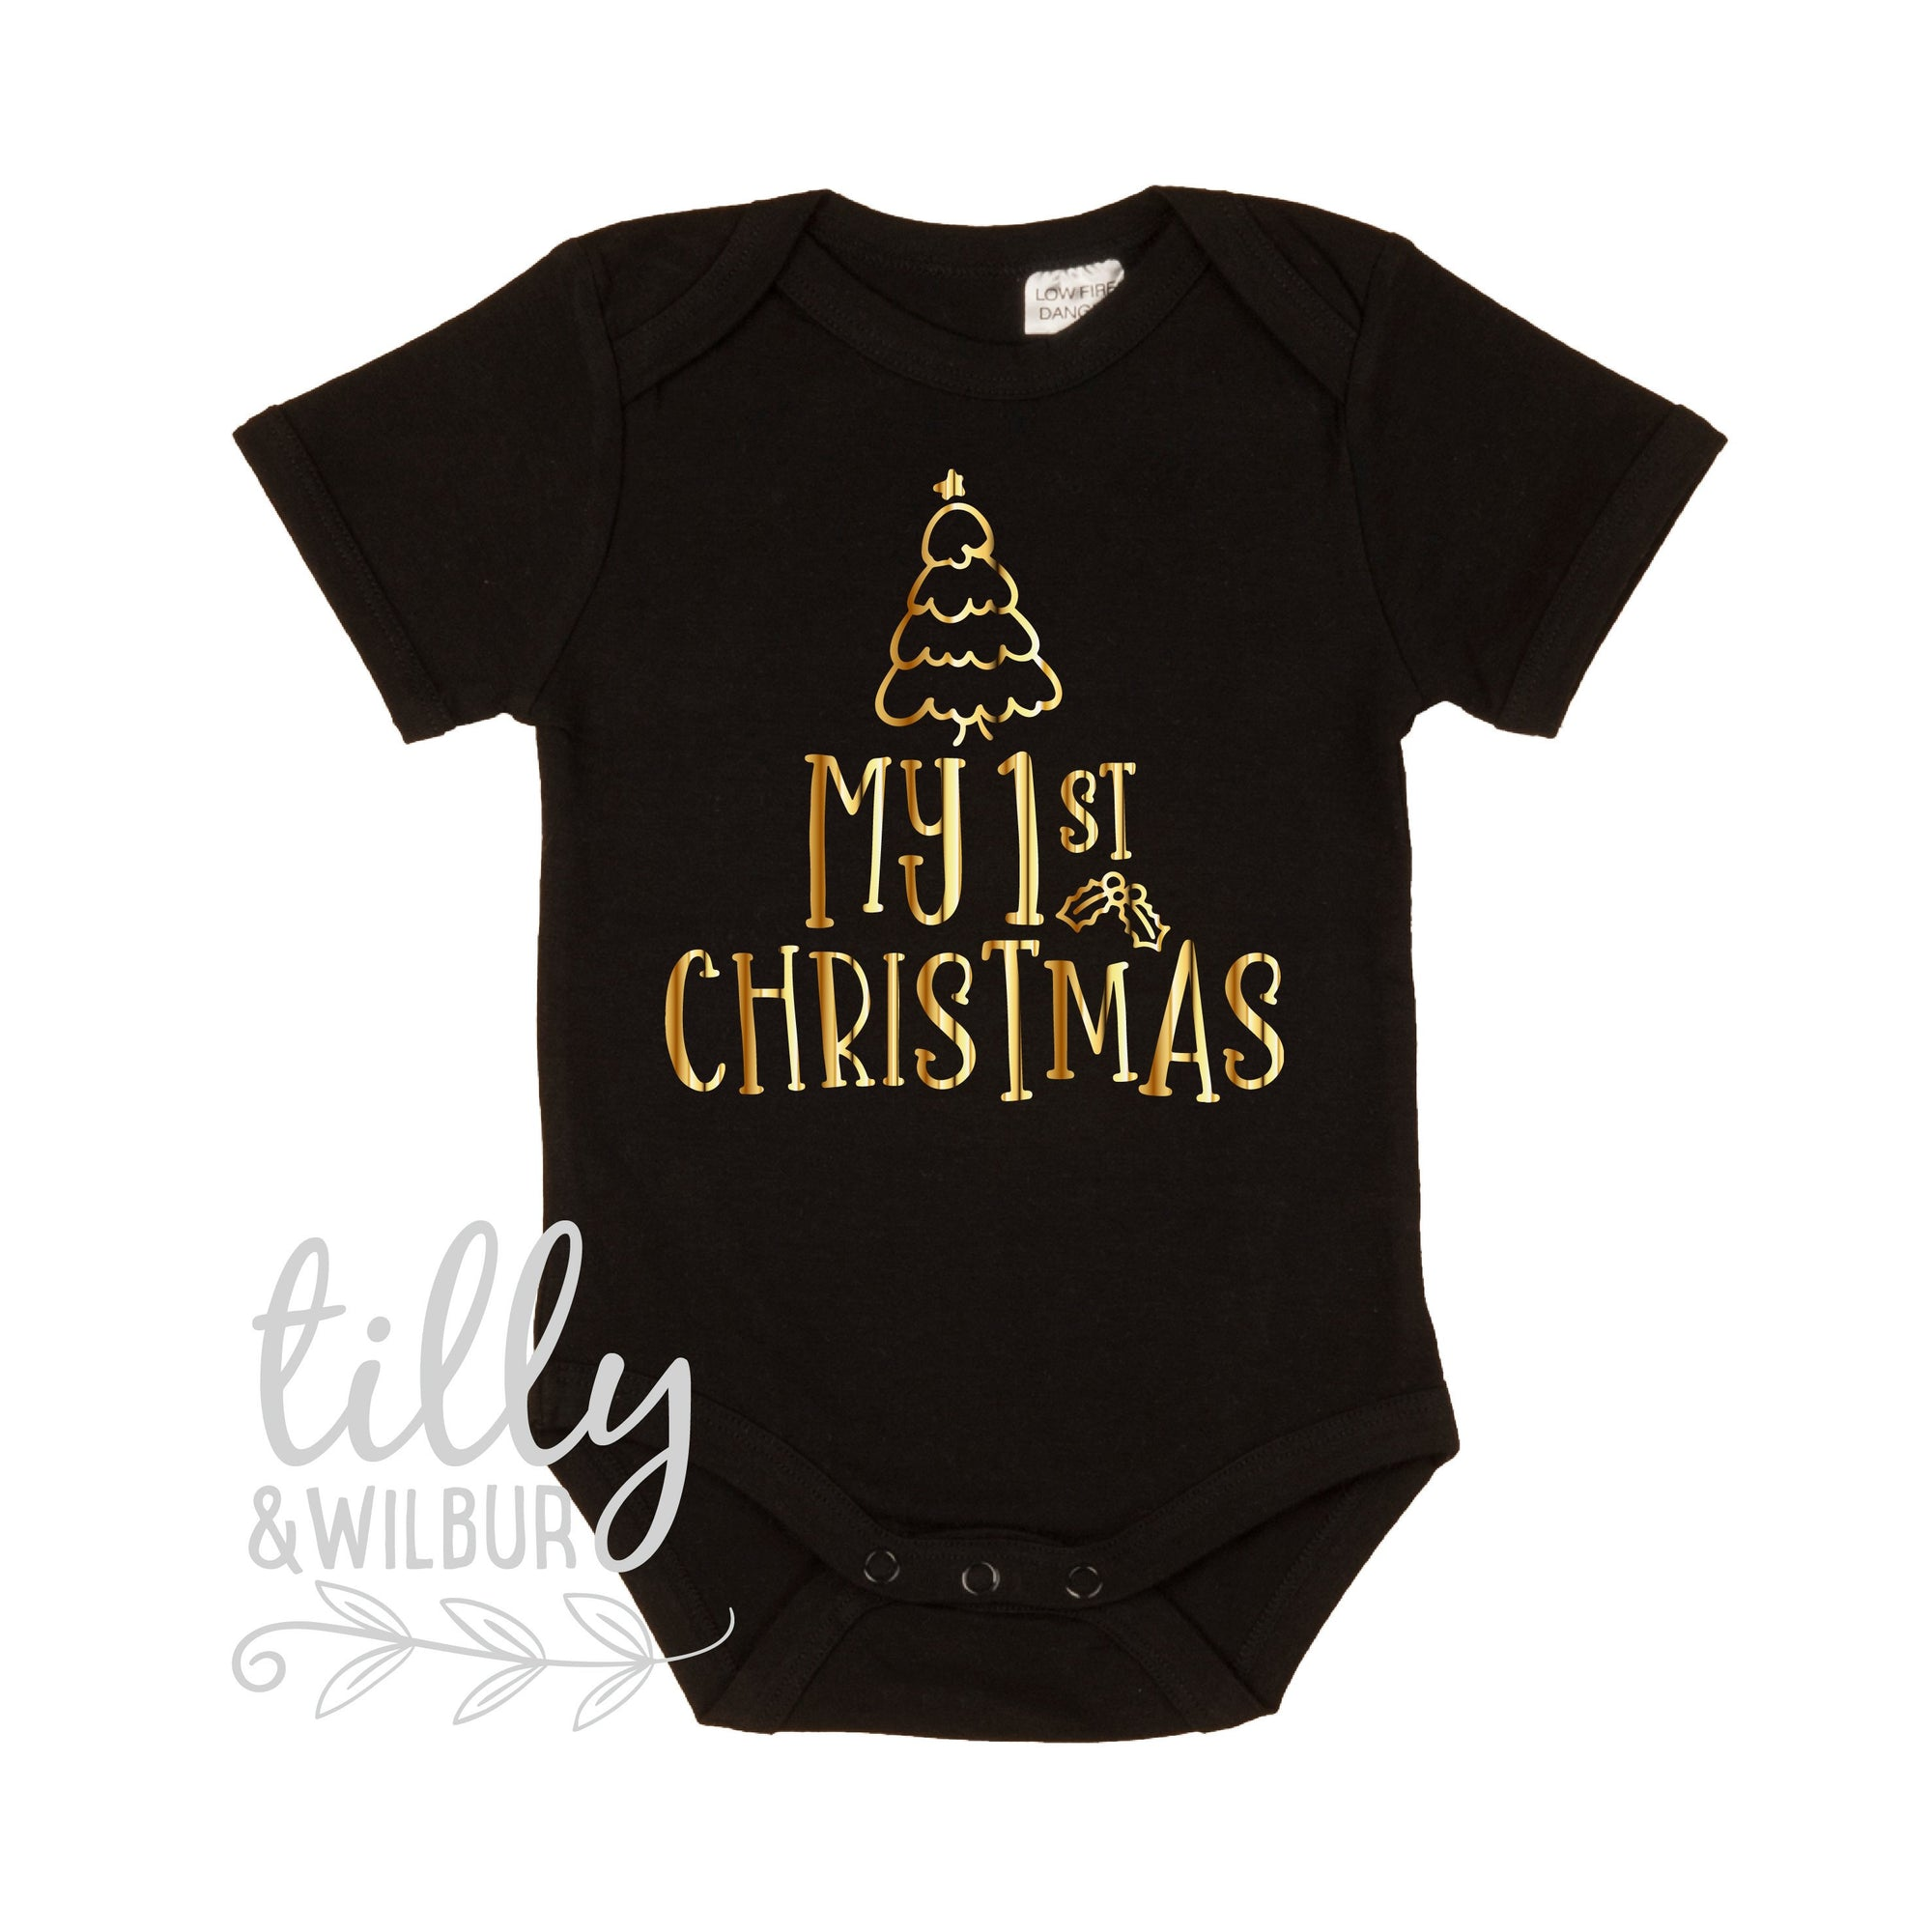 My First Christmas, 1st Christmas Baby Outfit, First Xmas Baby Bodysuit, Unisex Christmas Baby Gift, Newborn Baby First Christmas, Xmas